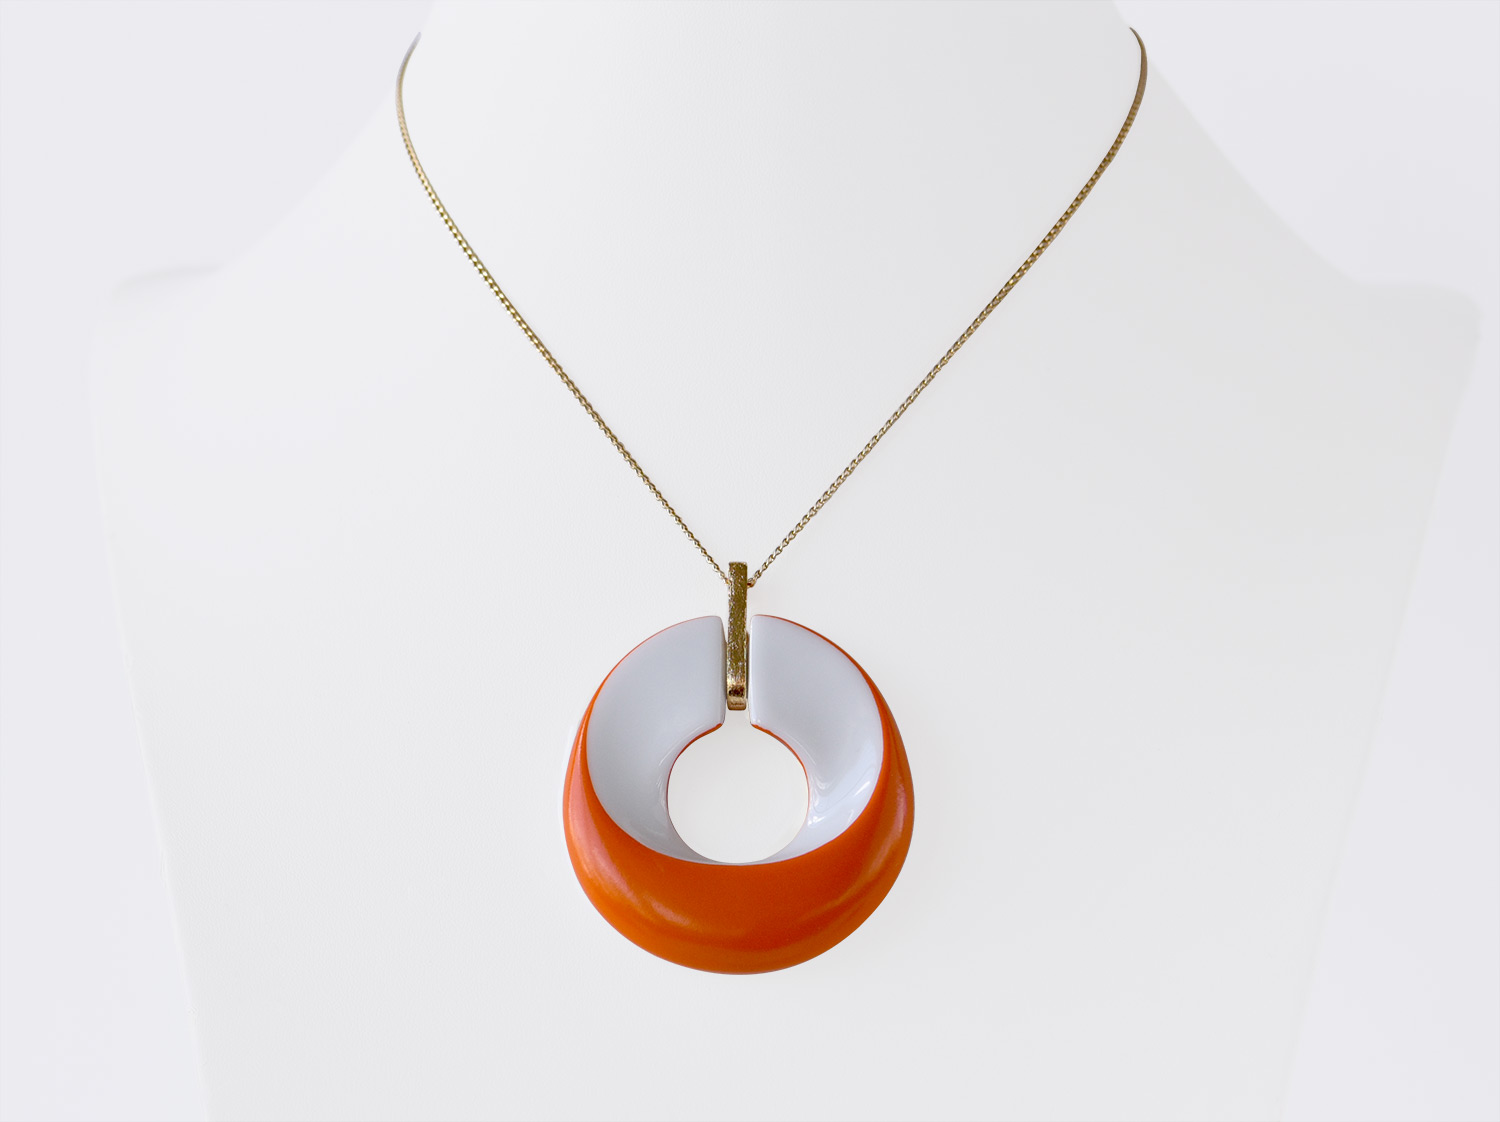 China Pendant of the collection ALBA ORANGE | Bernardaud